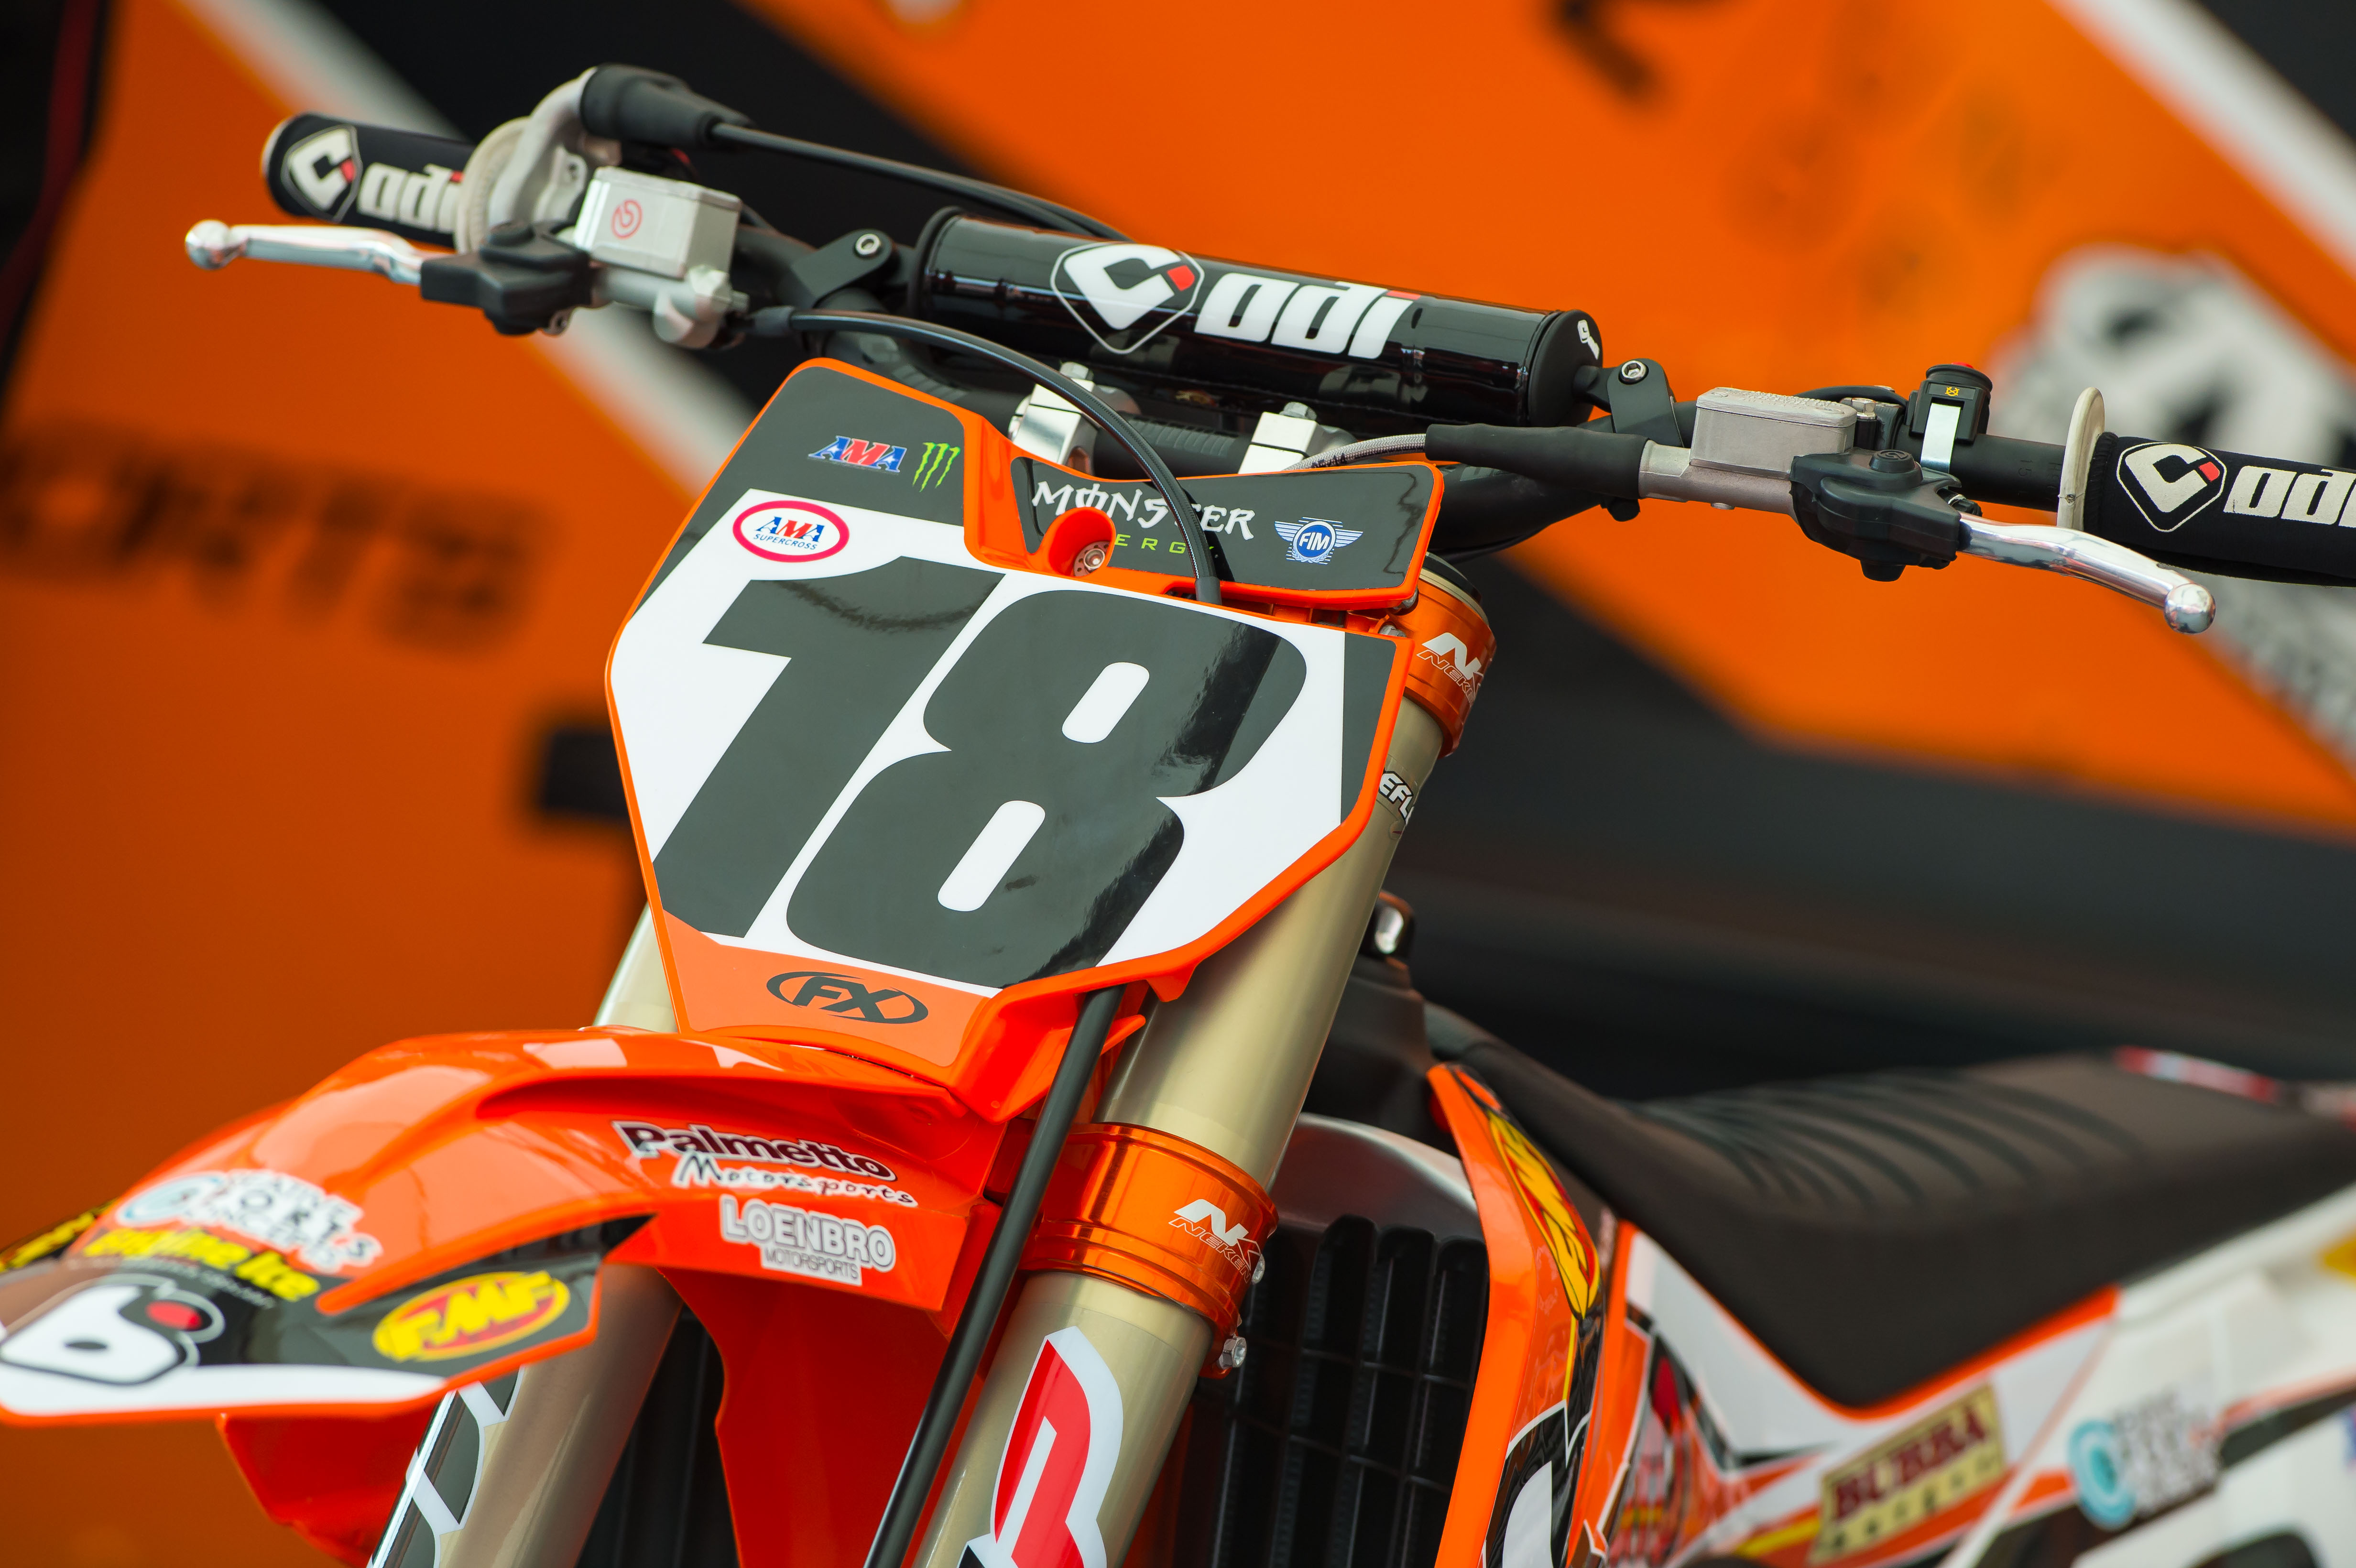 ODI  Grips partner with The 2020 Arenacross Tour